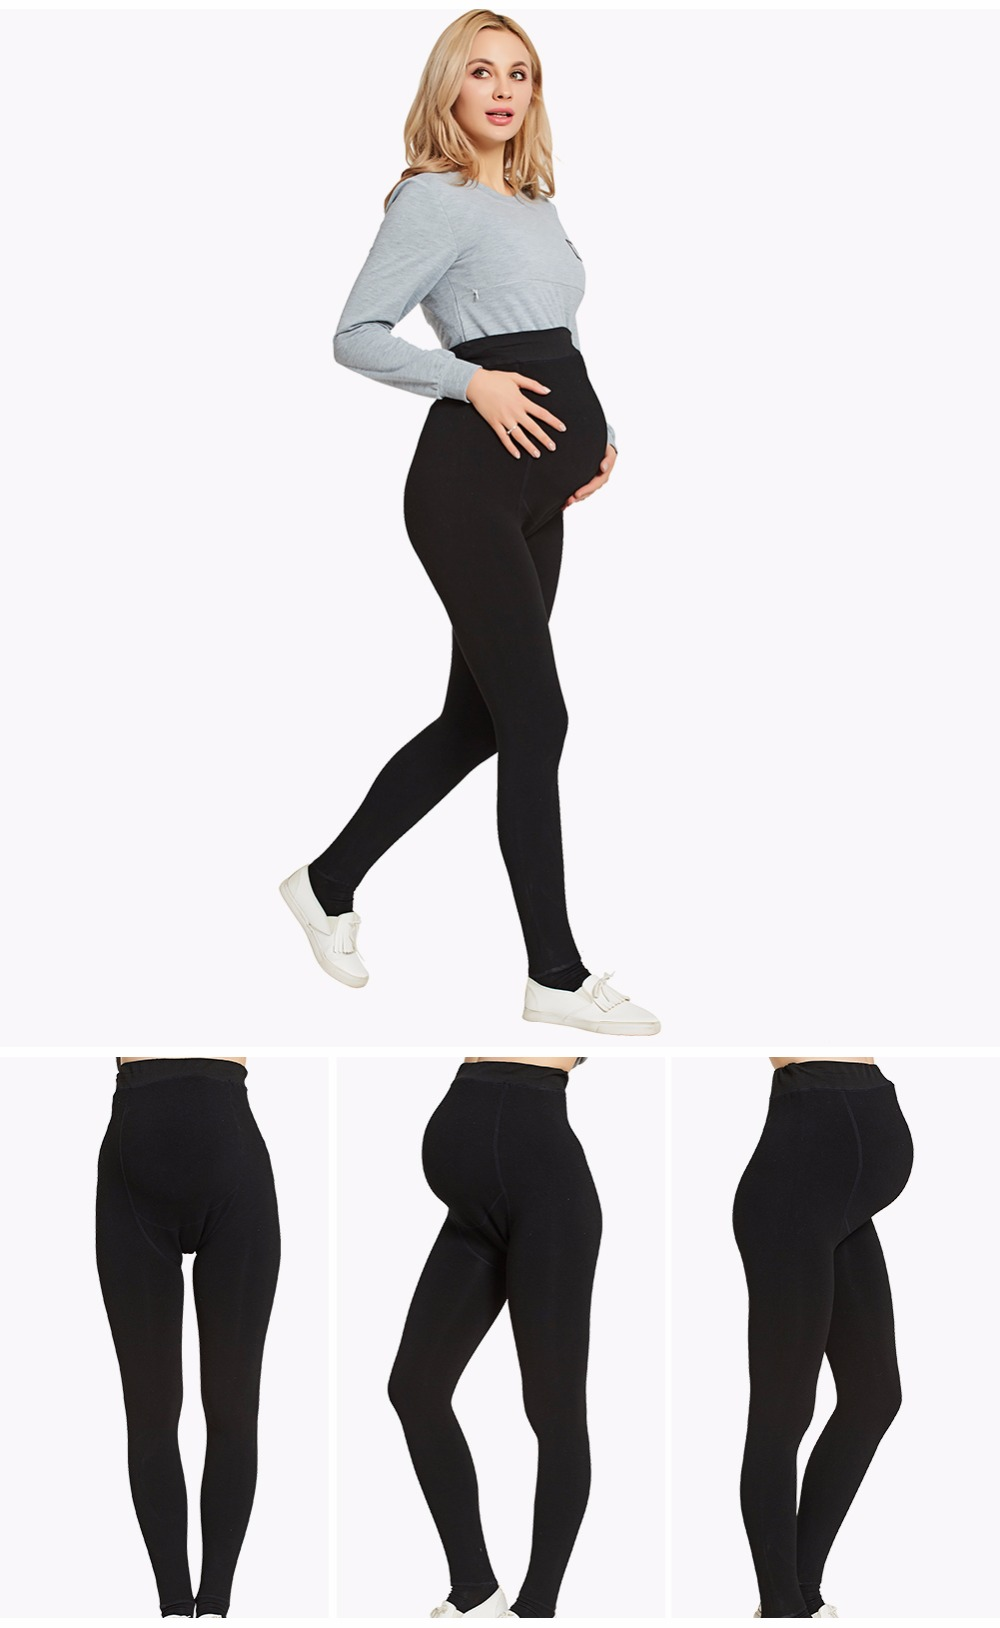 a51dd0061535a Buy Maternity Clothes Women's Maternity Clothing women cotton Pant ...